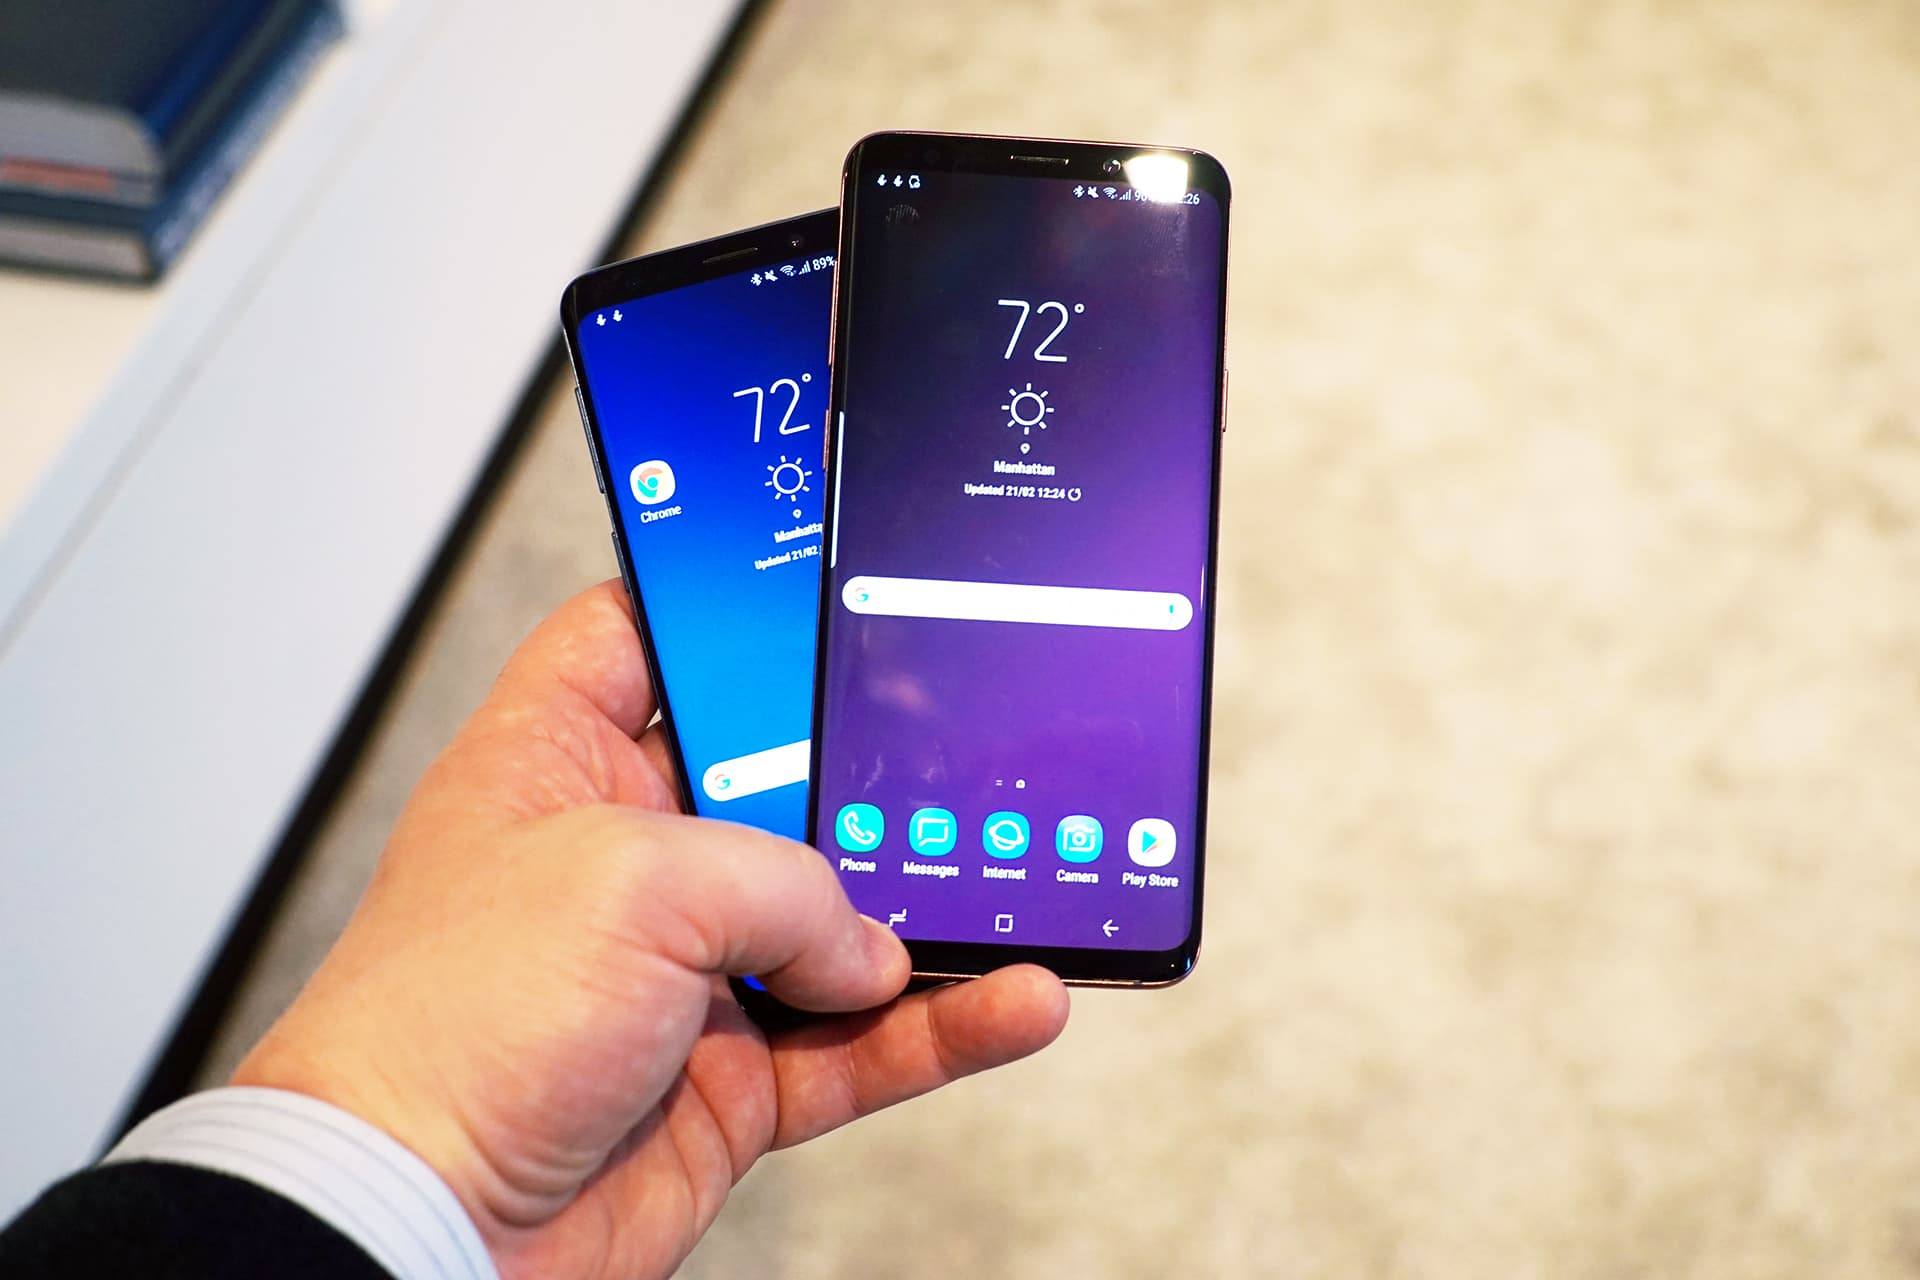 Which phone is better to buy for work and rest